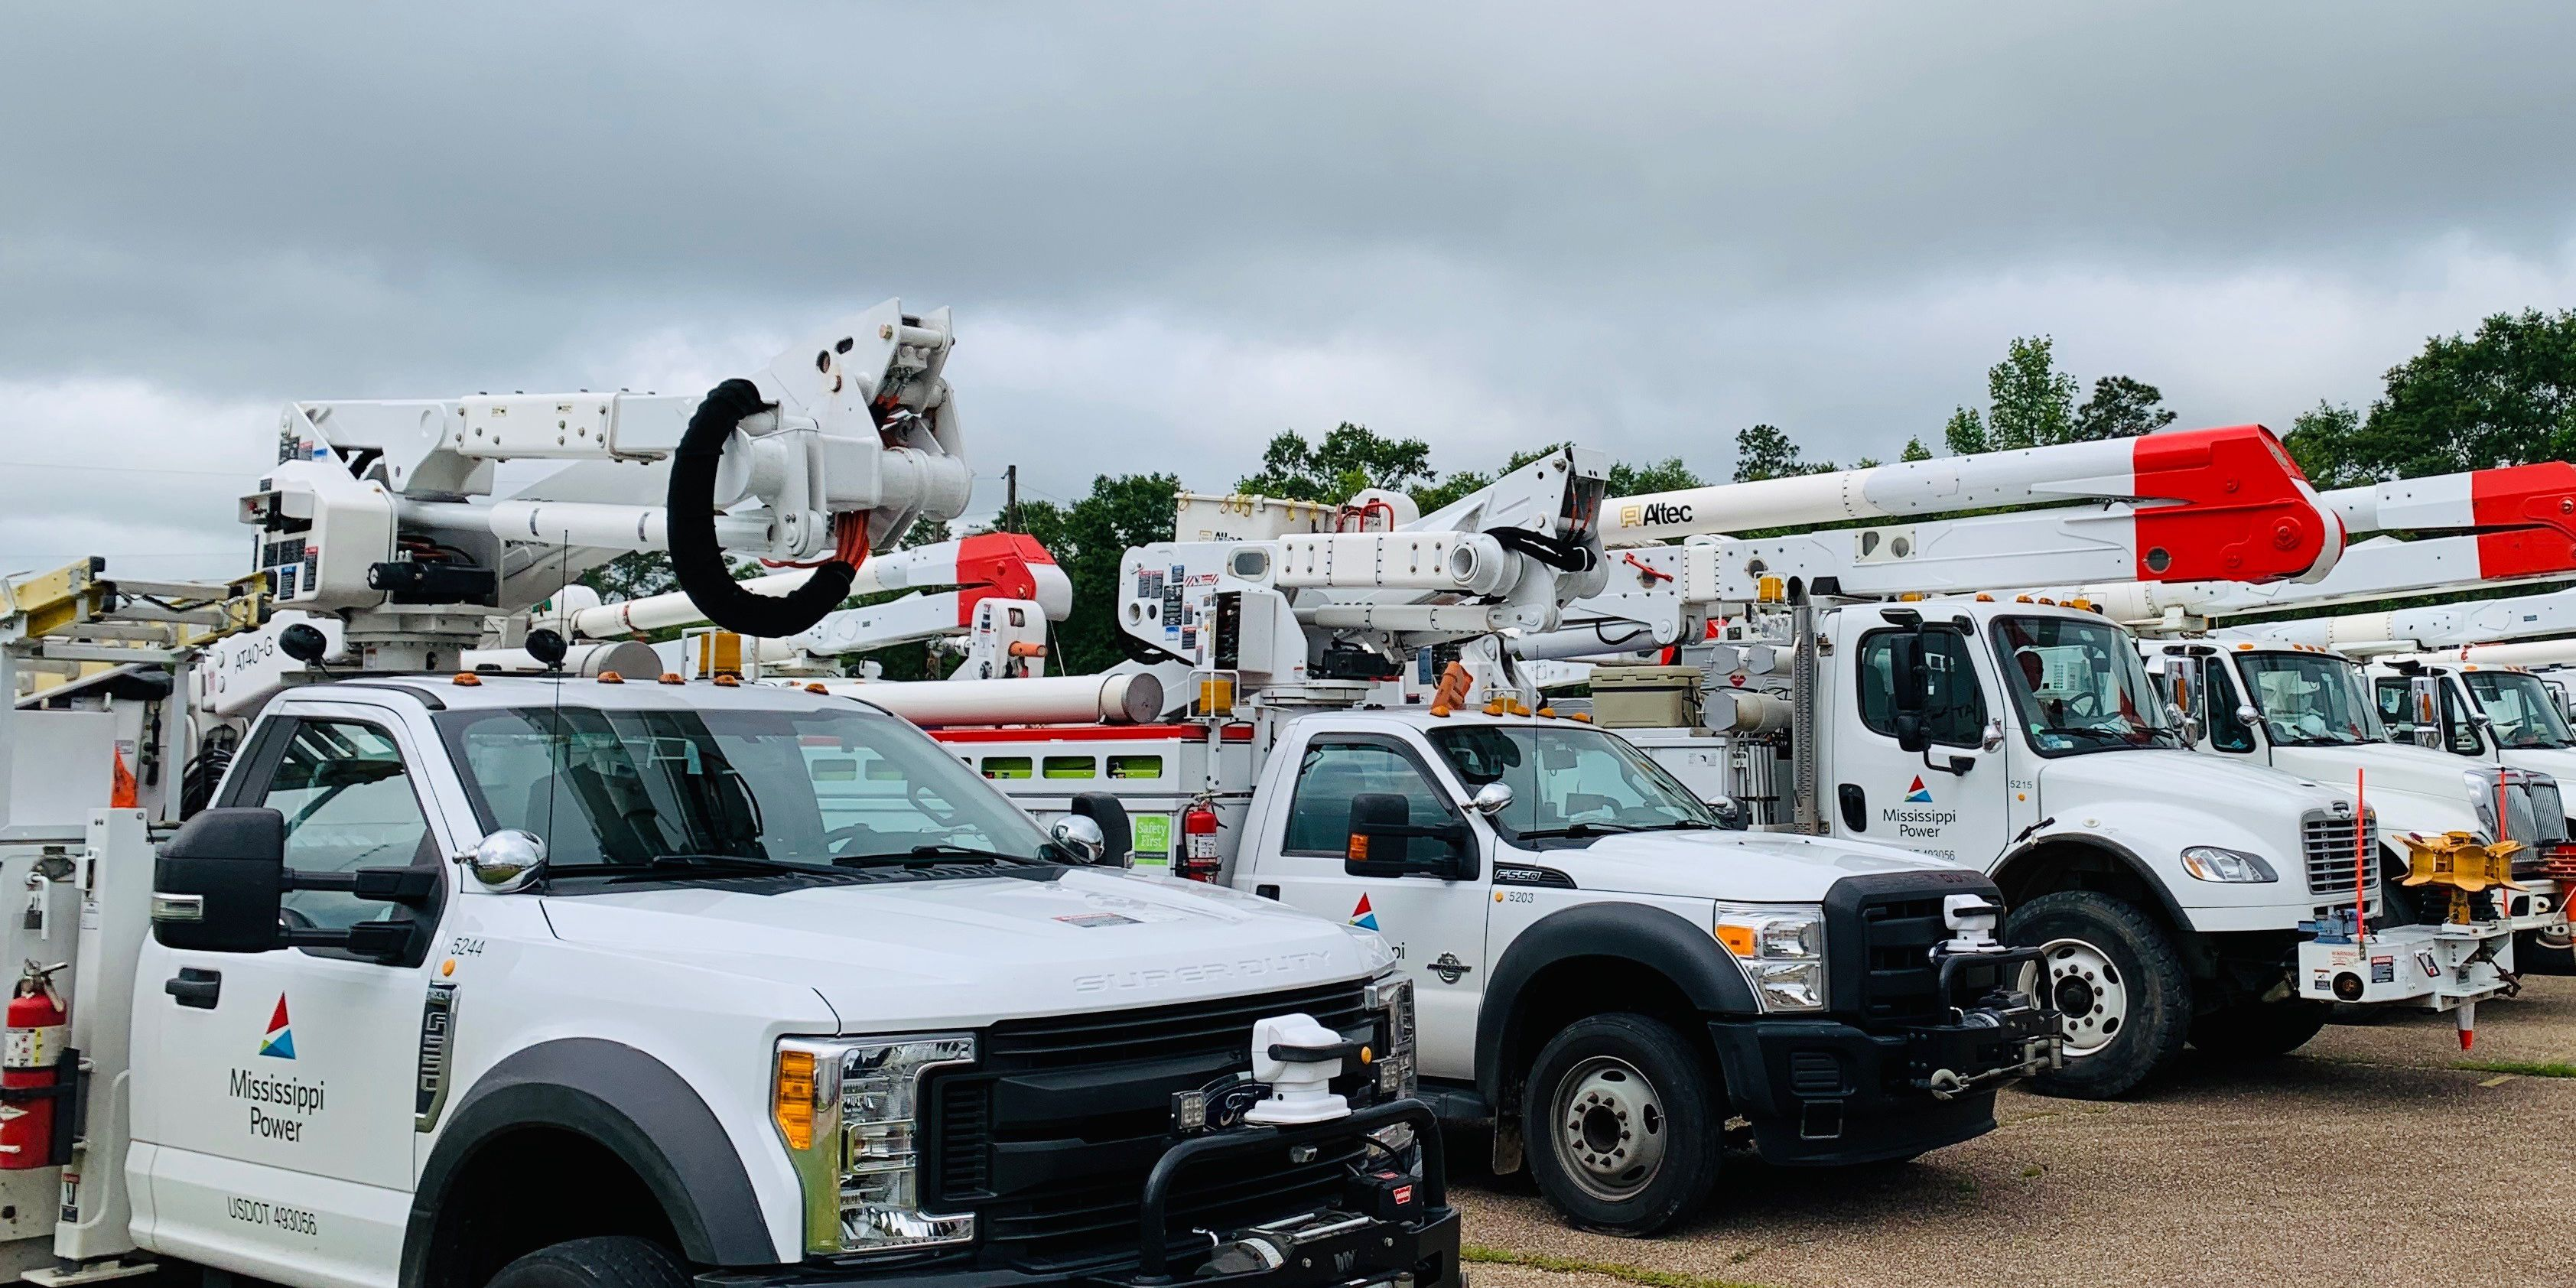 Mississippi Power storm team departs for Georgia ahead of Tropical Storm Isaias